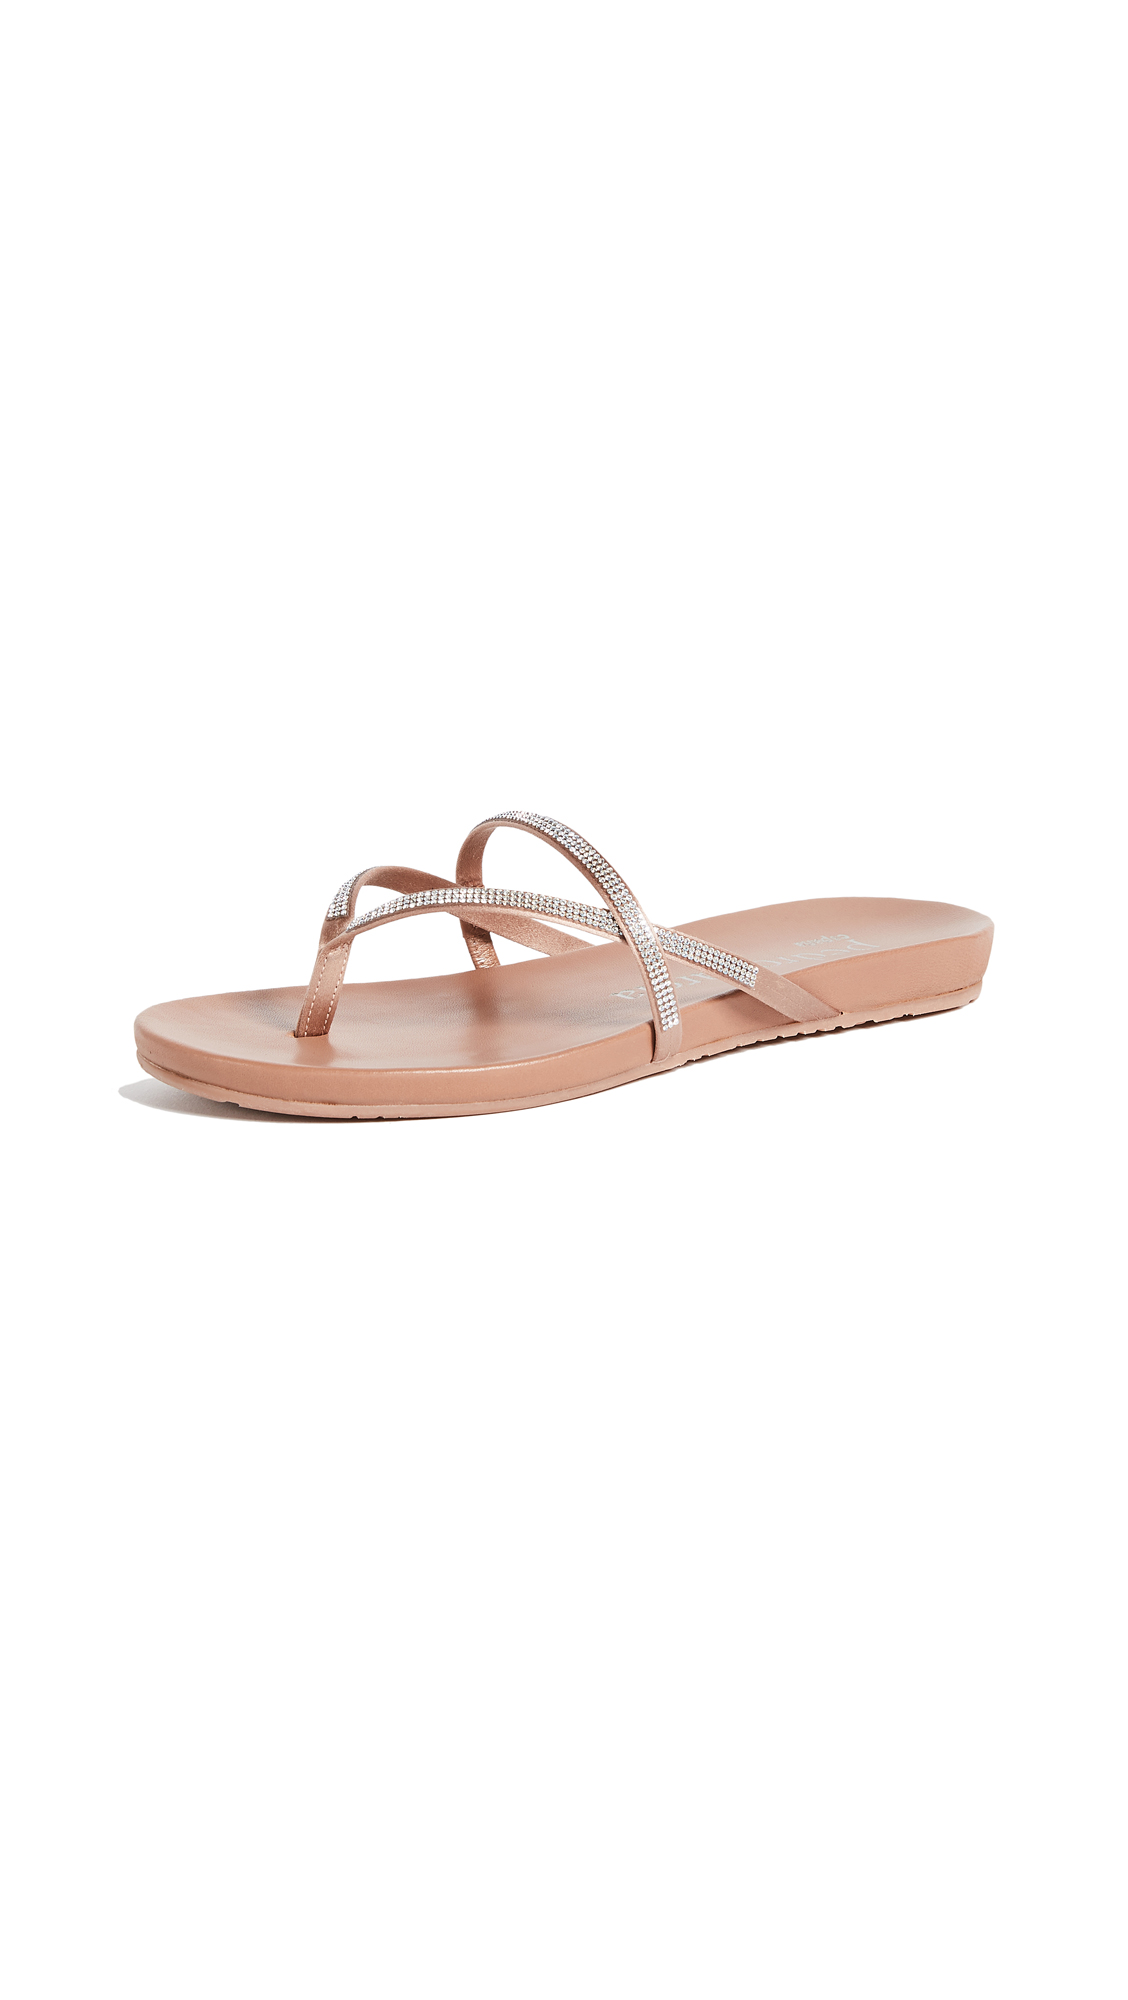 Pedro Garcia Giulia Thong Sandals - Bisque